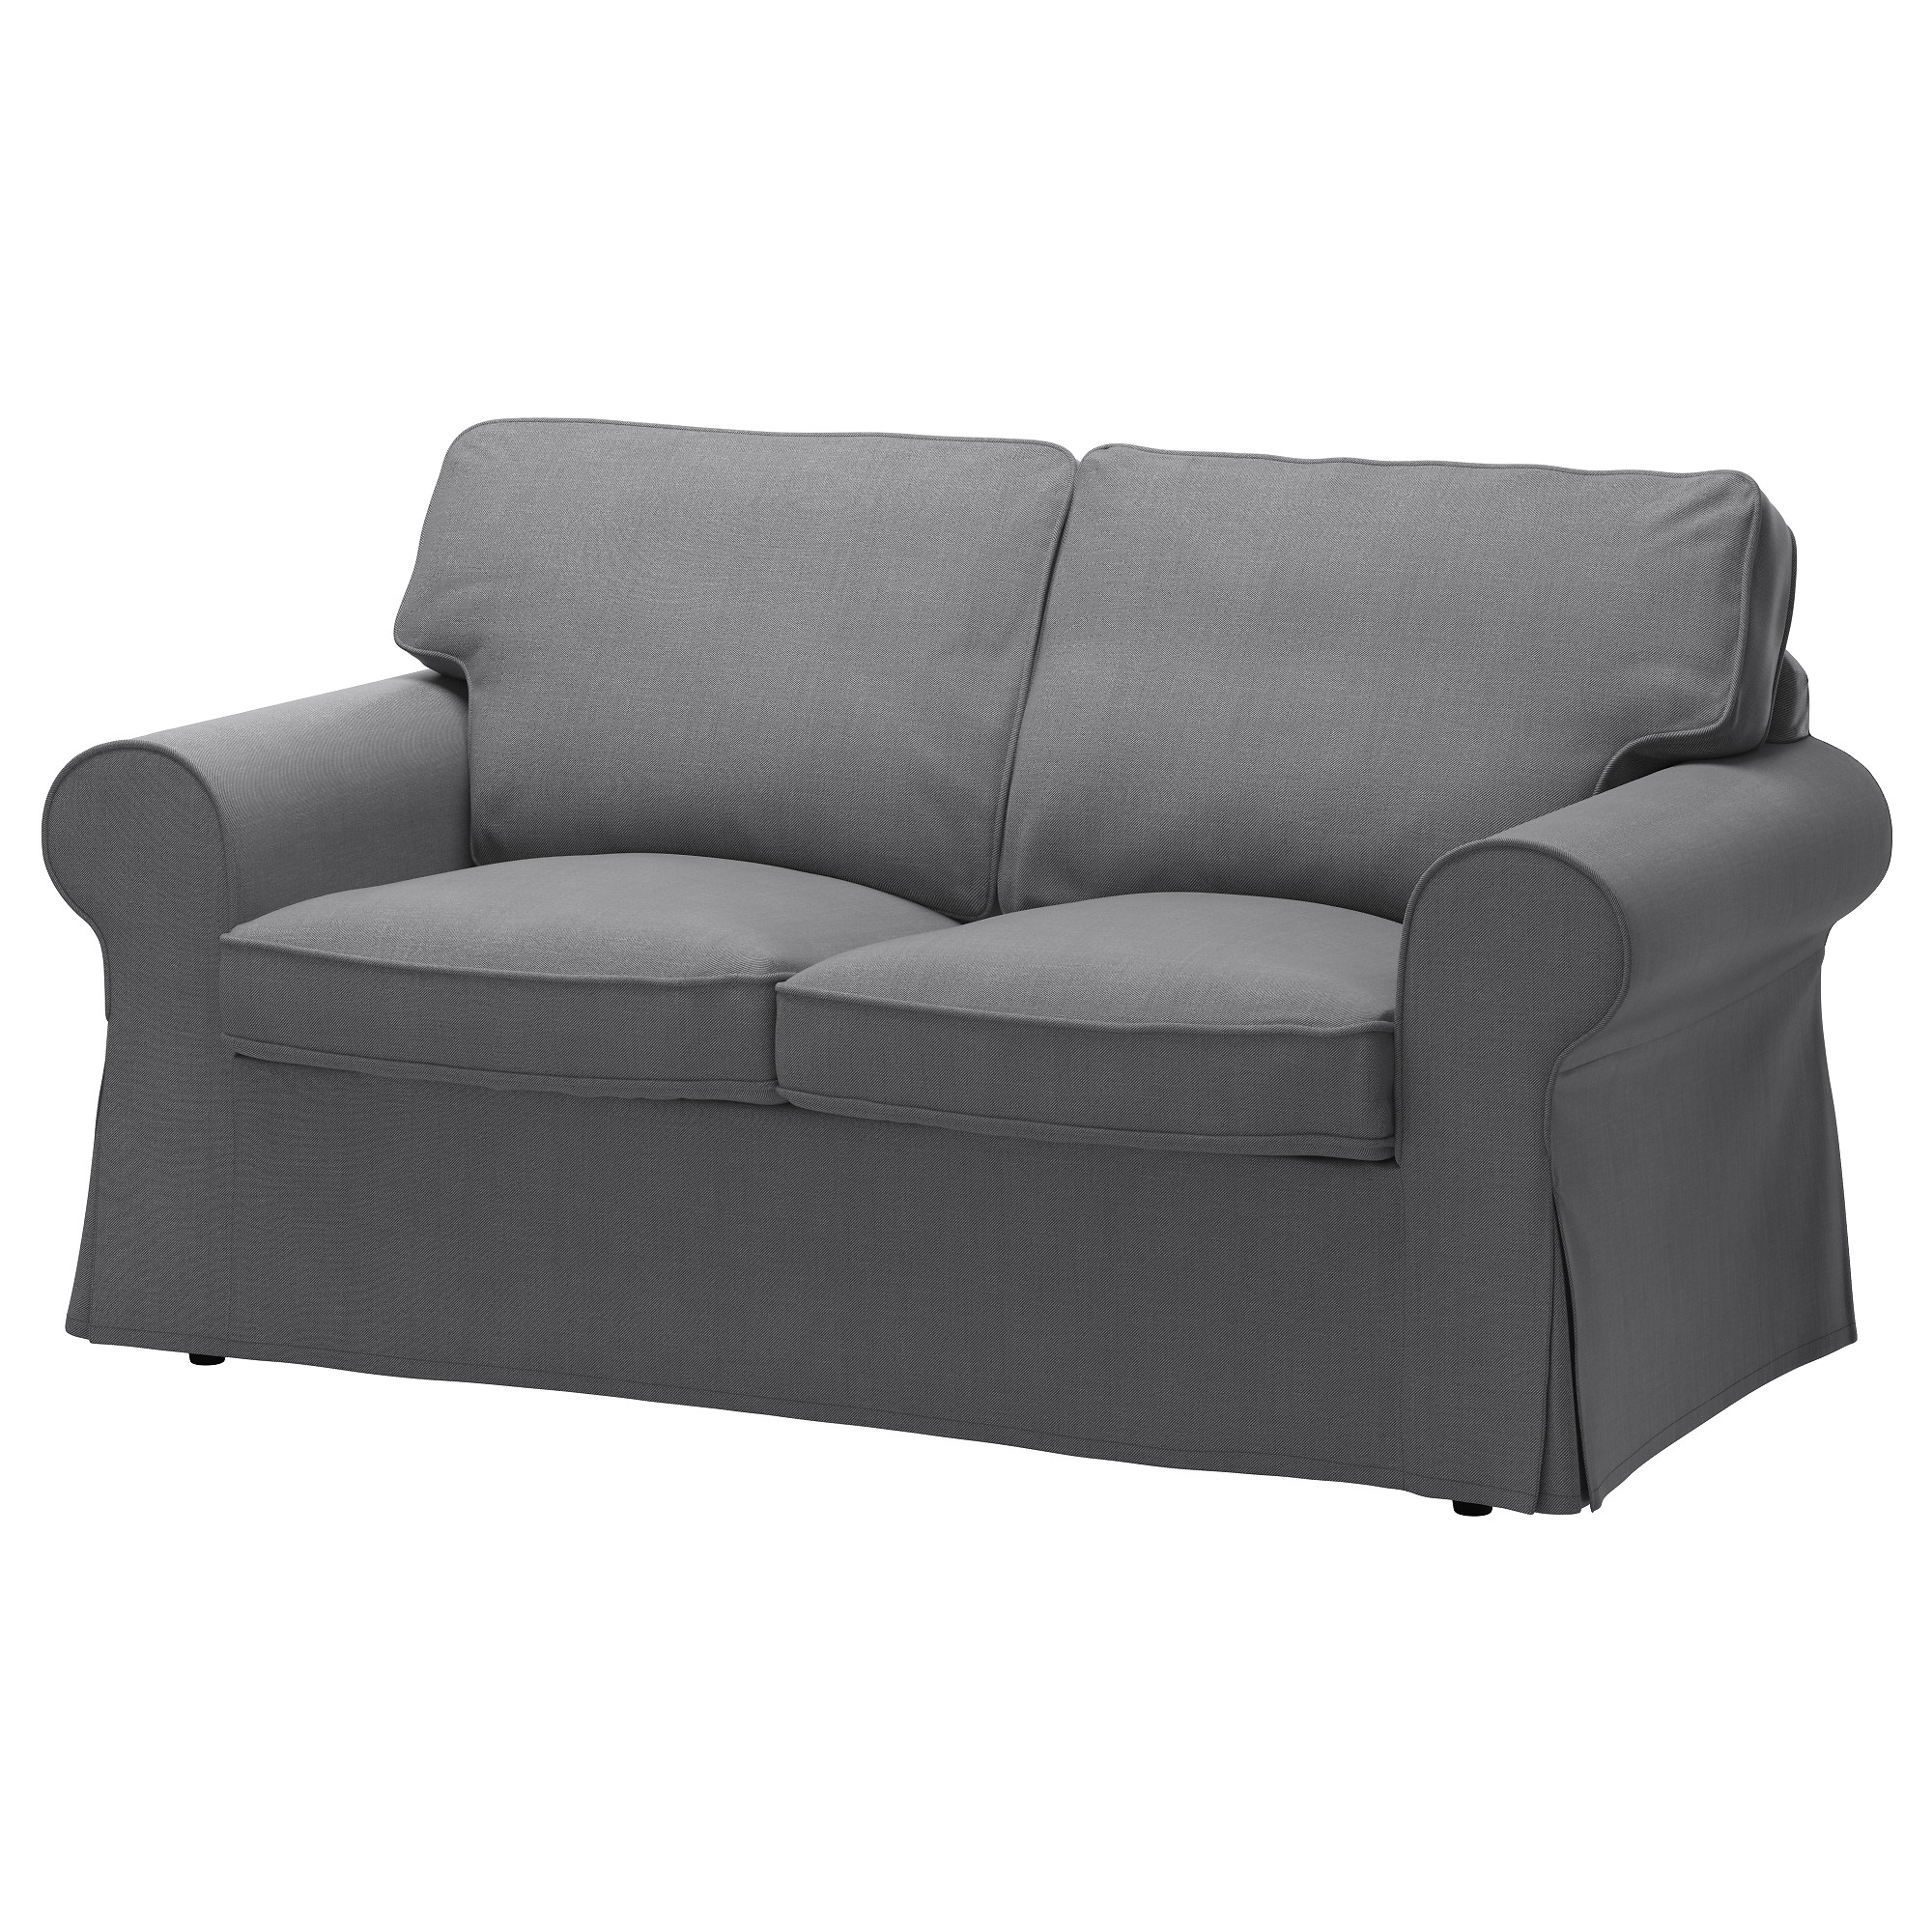 Fabric Sofas | Ikea Regarding Sofas With Washable Covers (View 6 of 10)